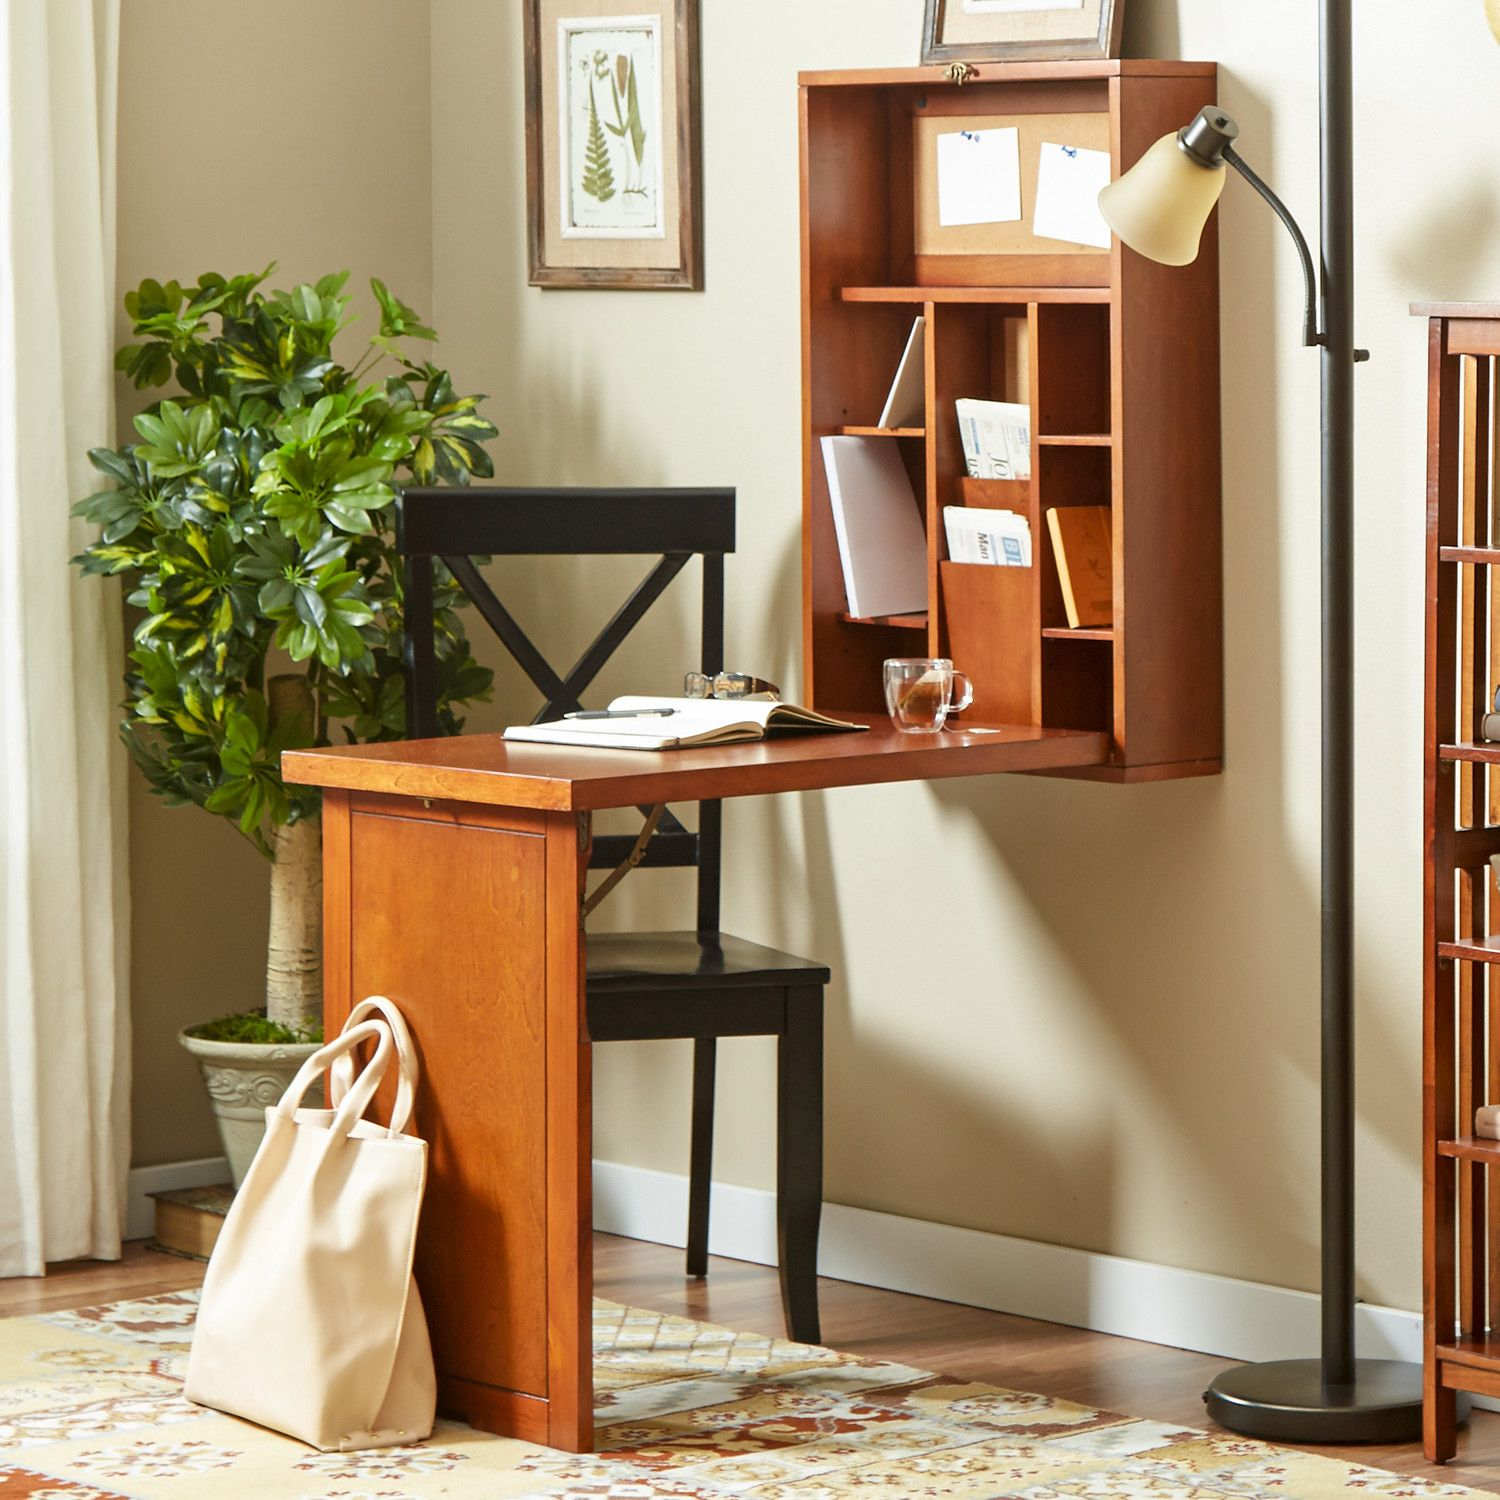 Andover Mills Wall Mounted Fold Up Desk & Reviews